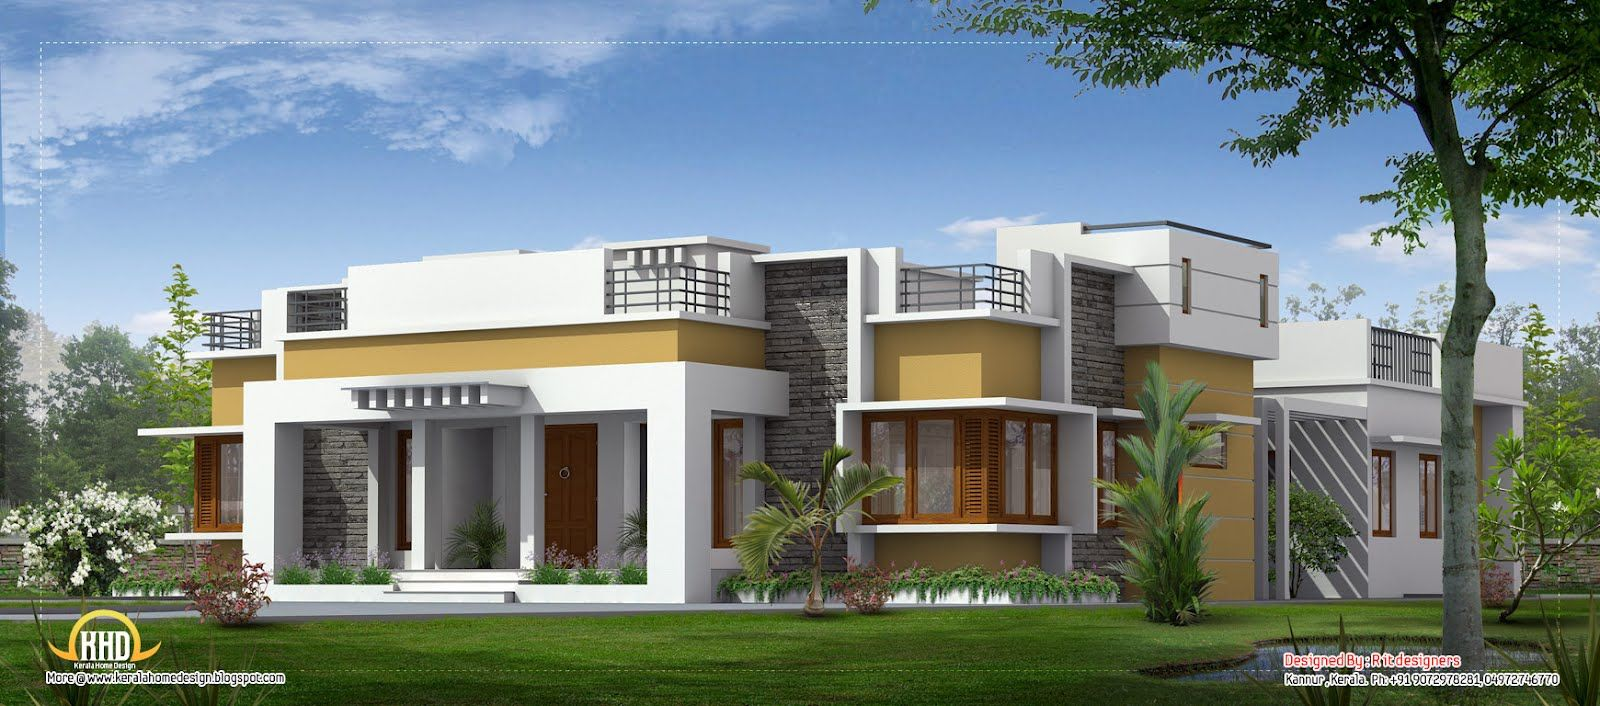 Single level designer home single floor house plans for Single home design